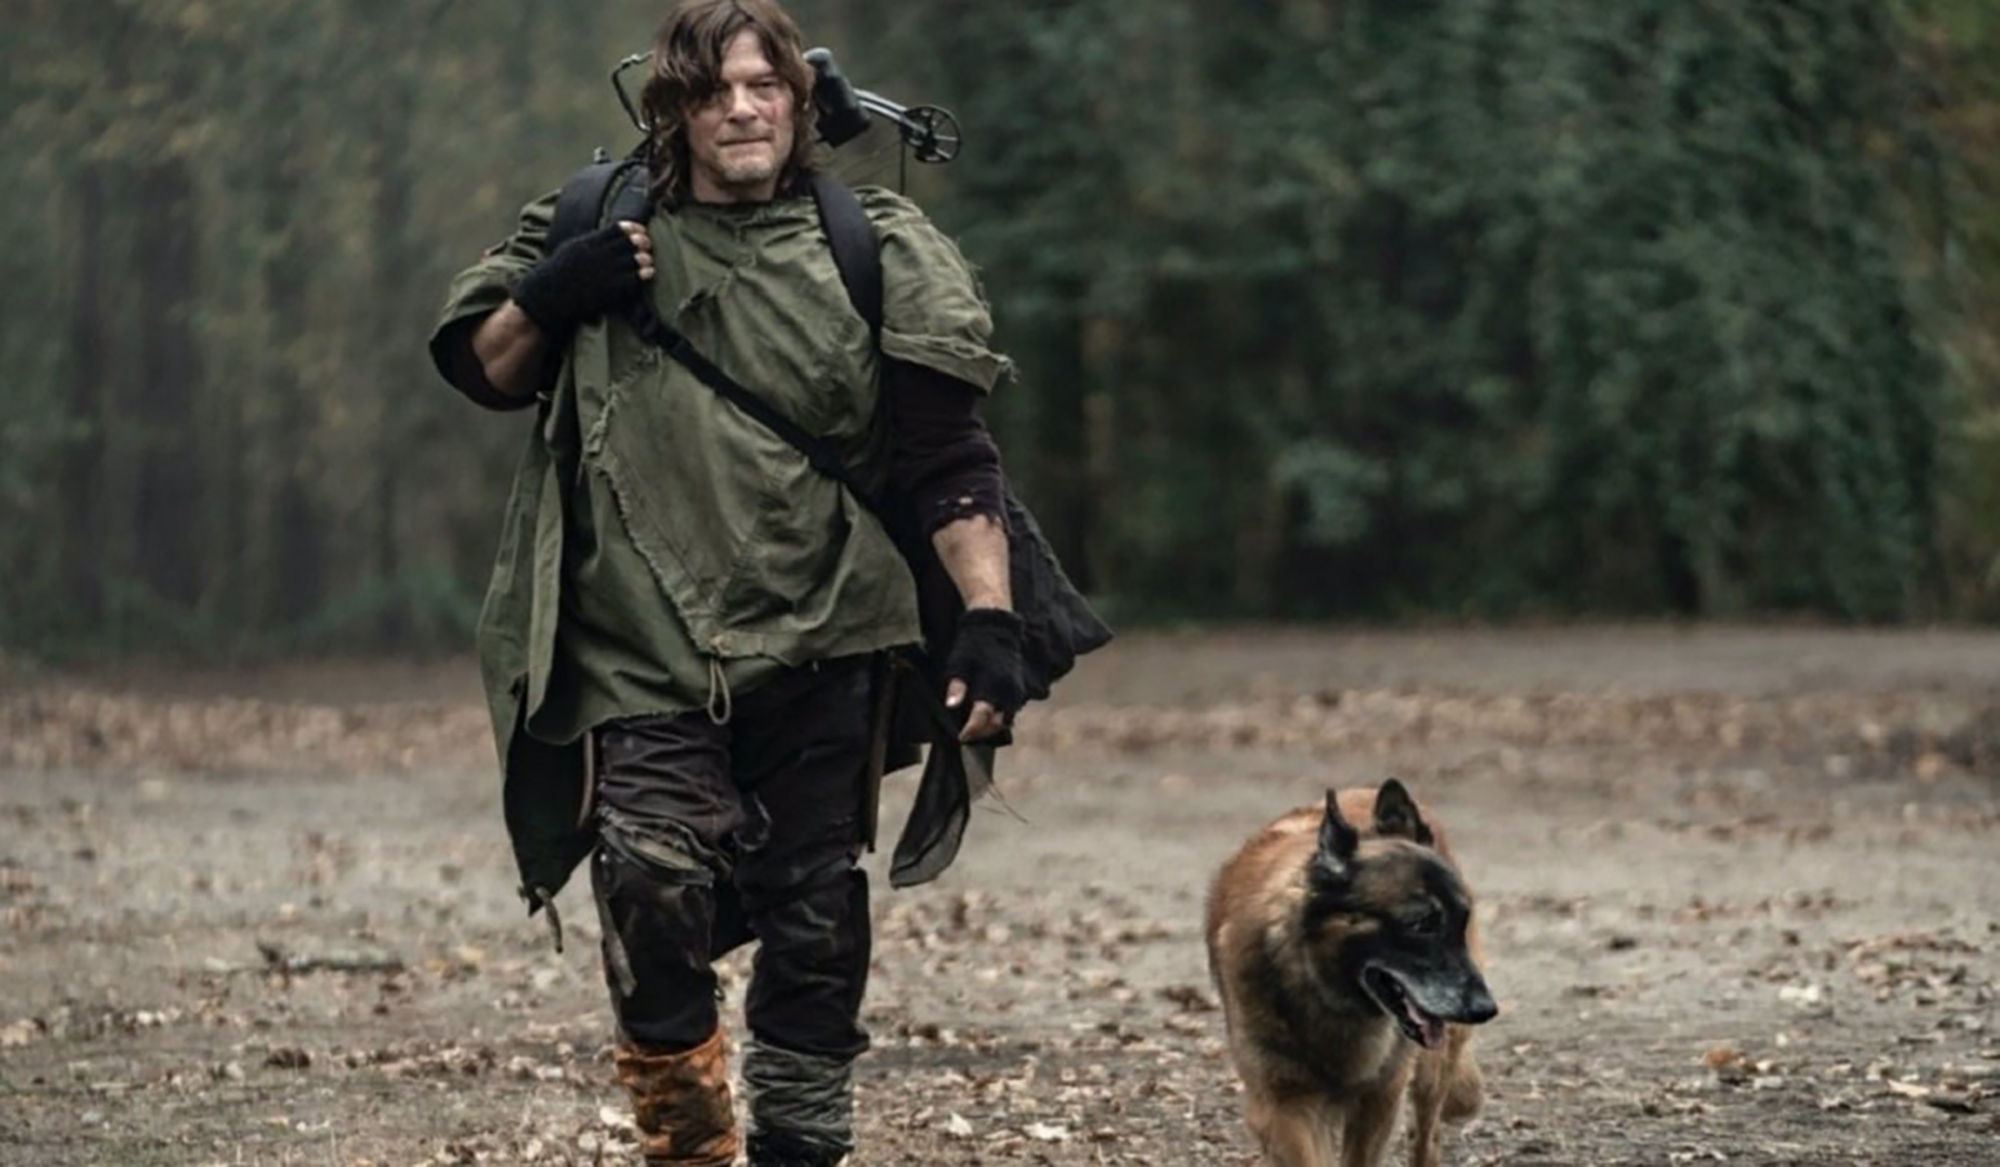 Reseña de 'The Walking Dead' 10x18: los secretos de Daryl